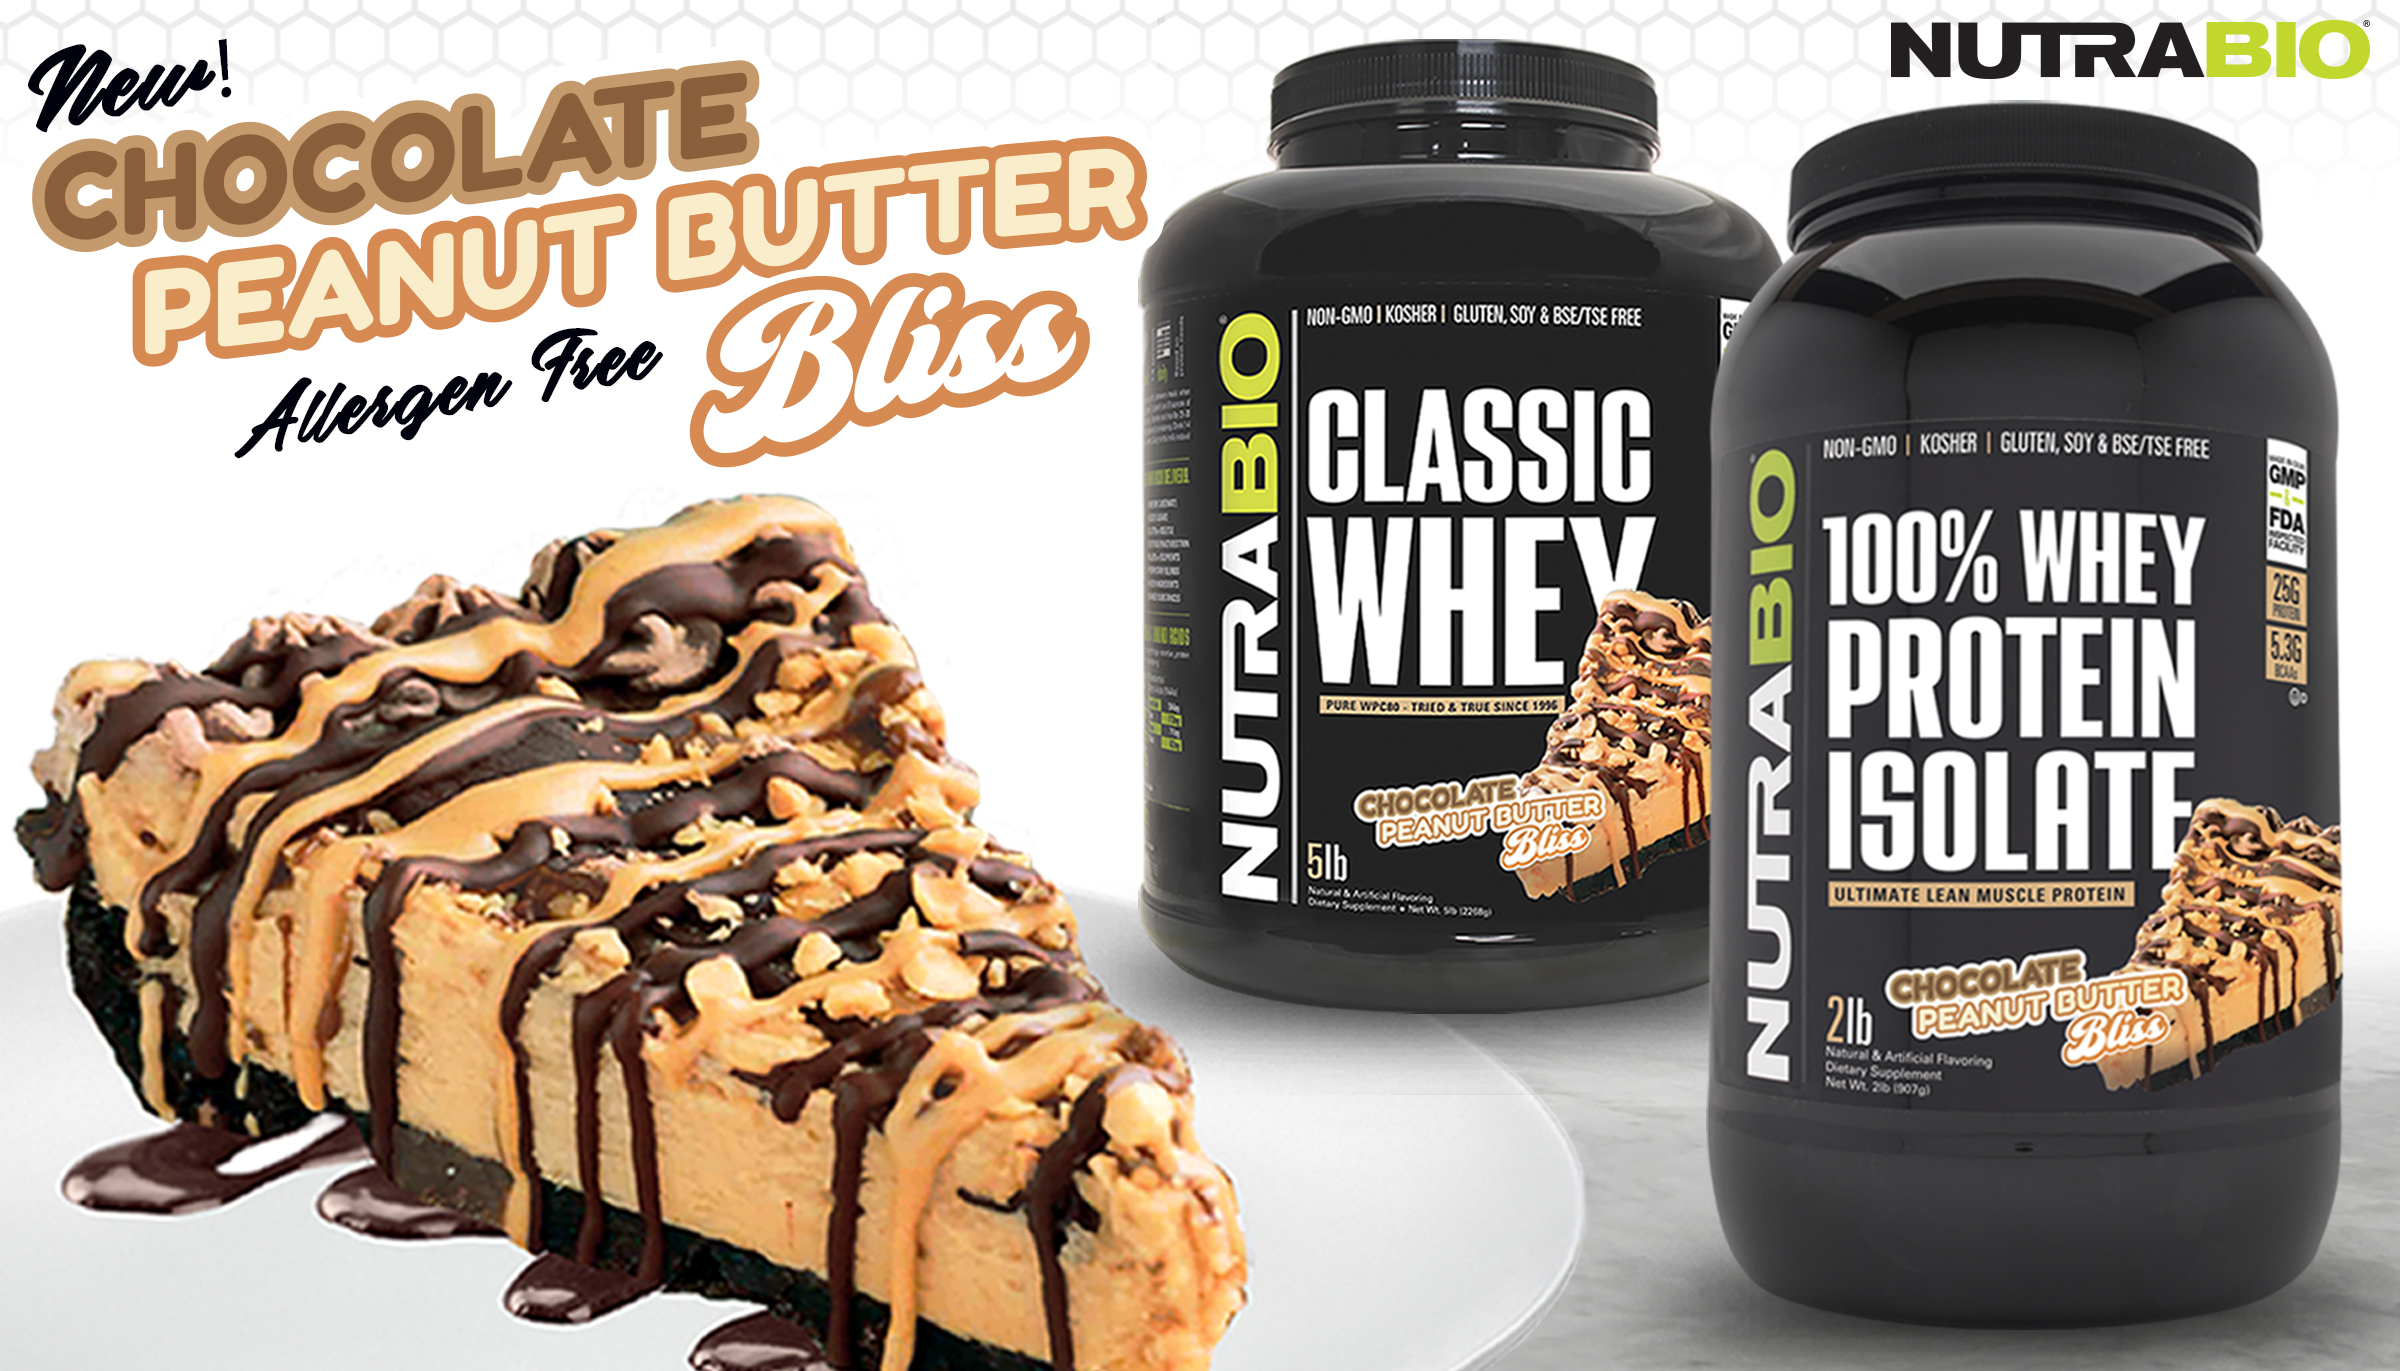 NutraBio Classic Whey Chocolate Peanut Butter BLISS… with No Nut Allergens!